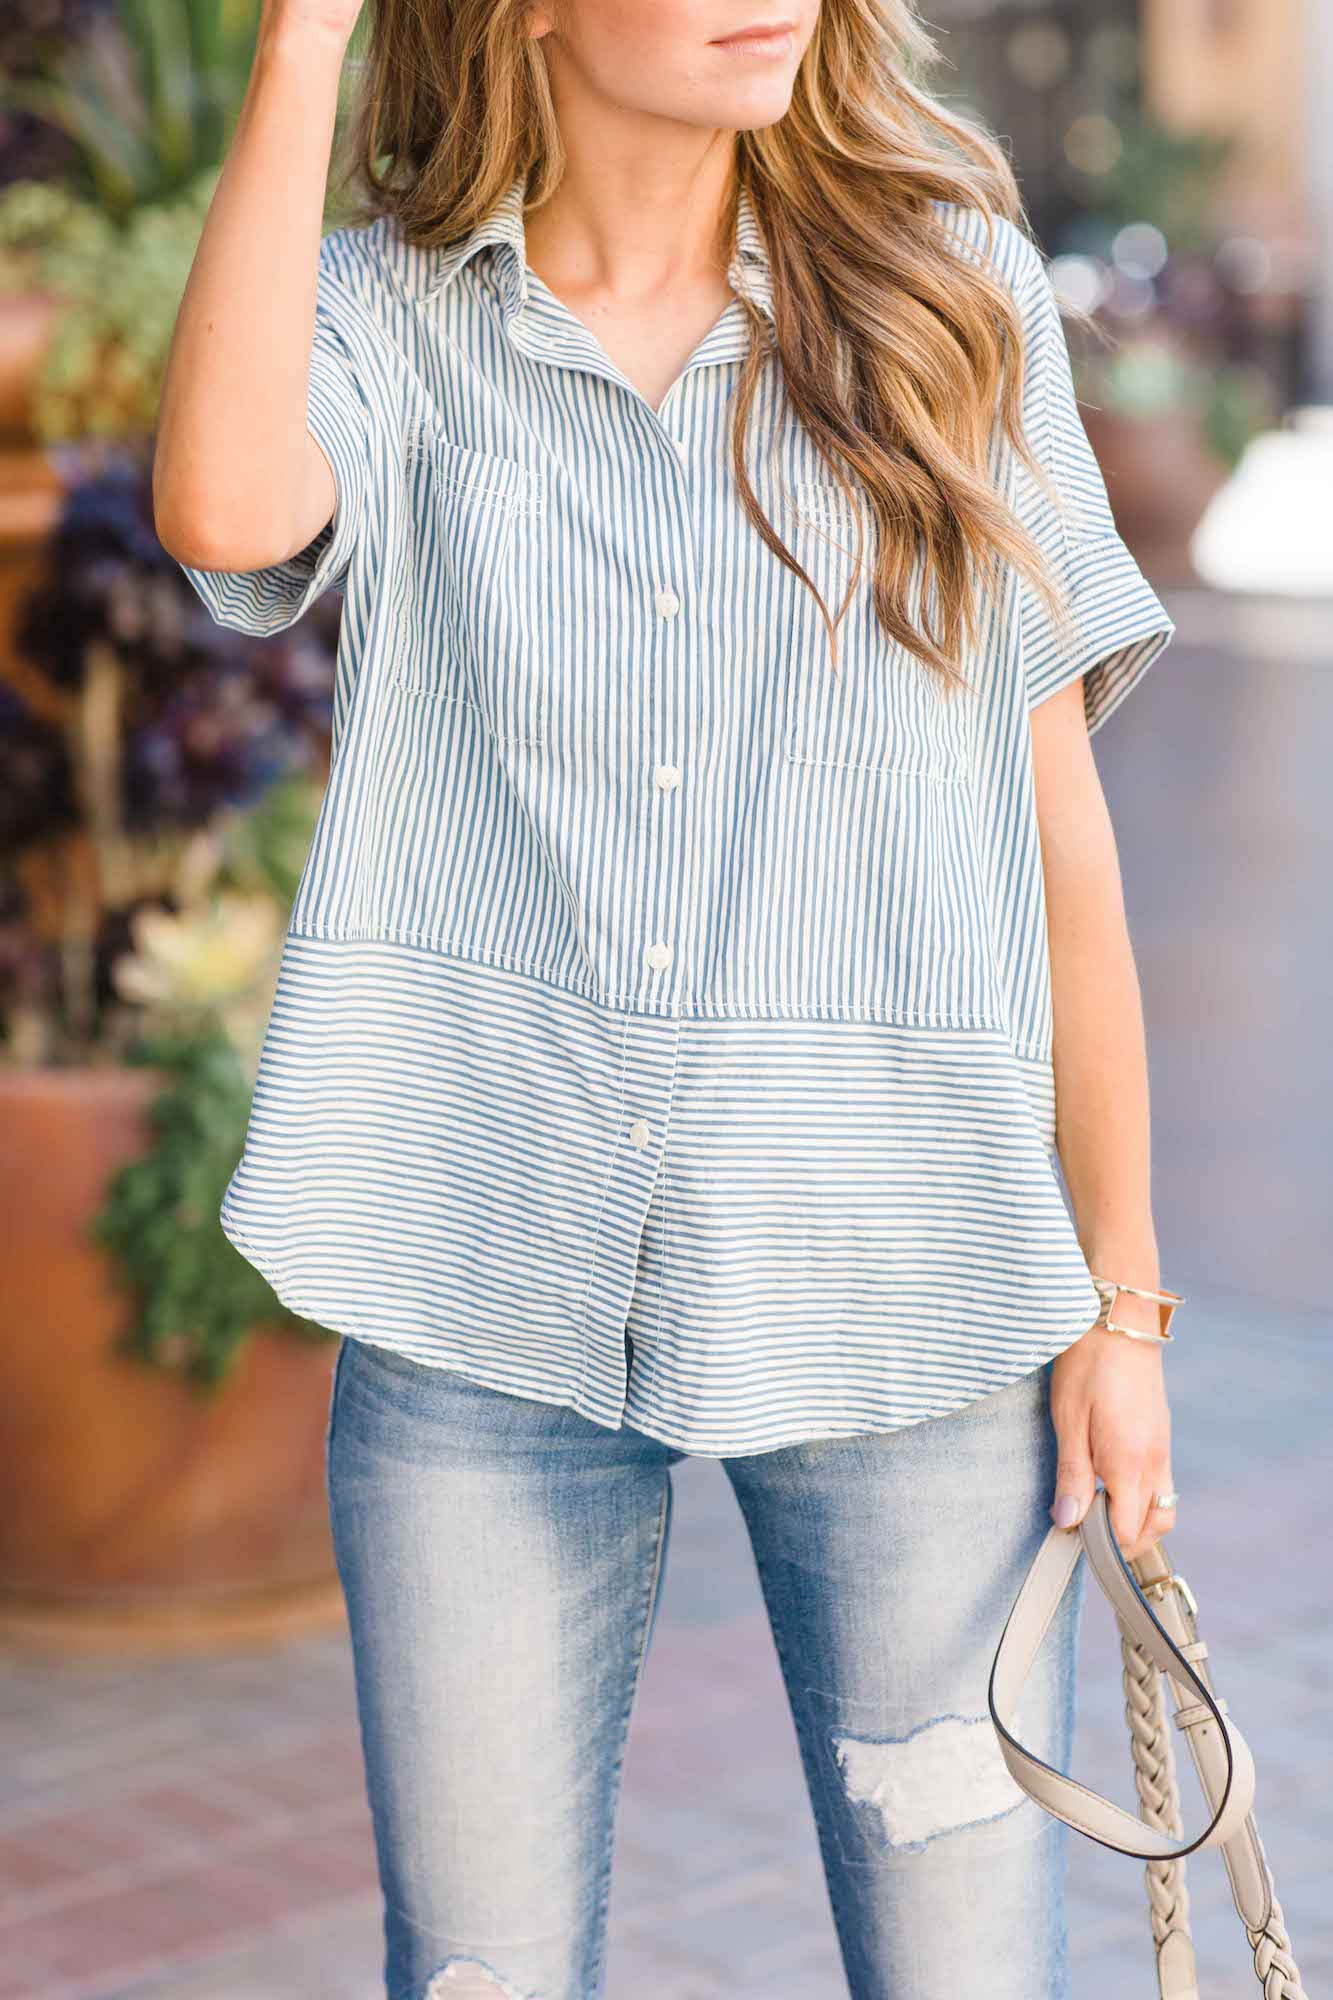 Merrick's Art Madewell Striped Shirt